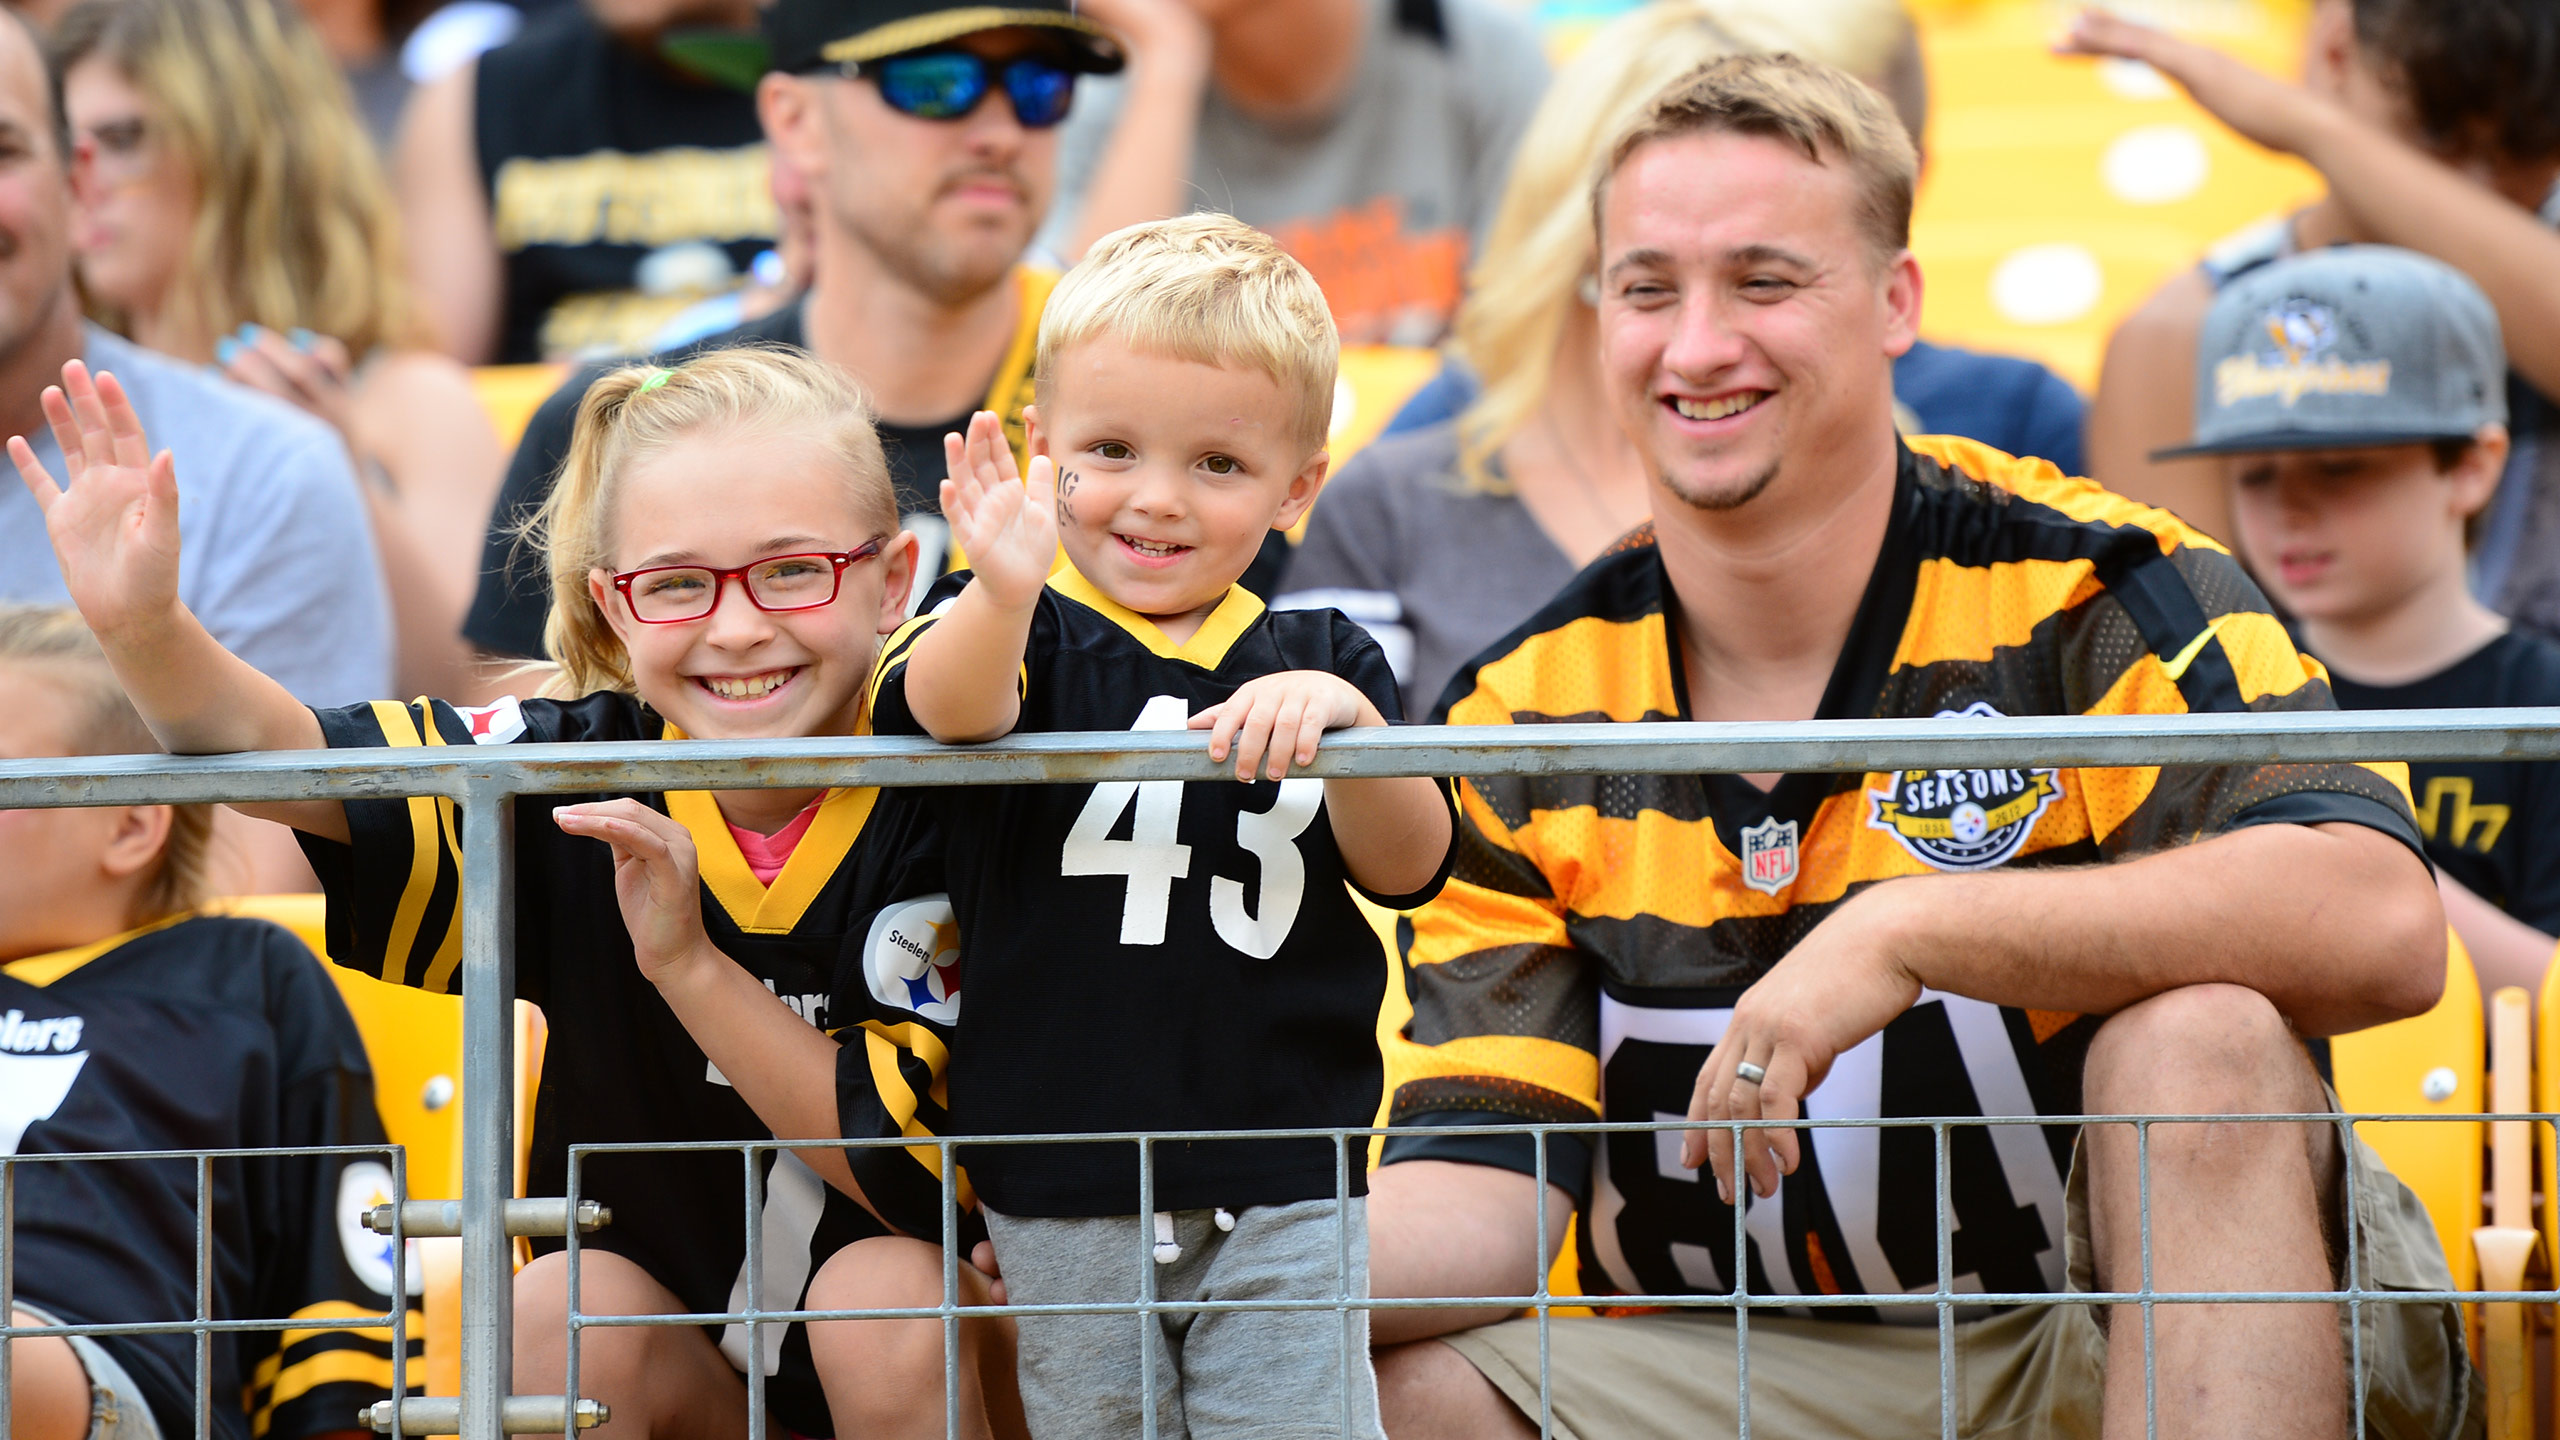 steelers family fest pittsburgh steelers steelers com